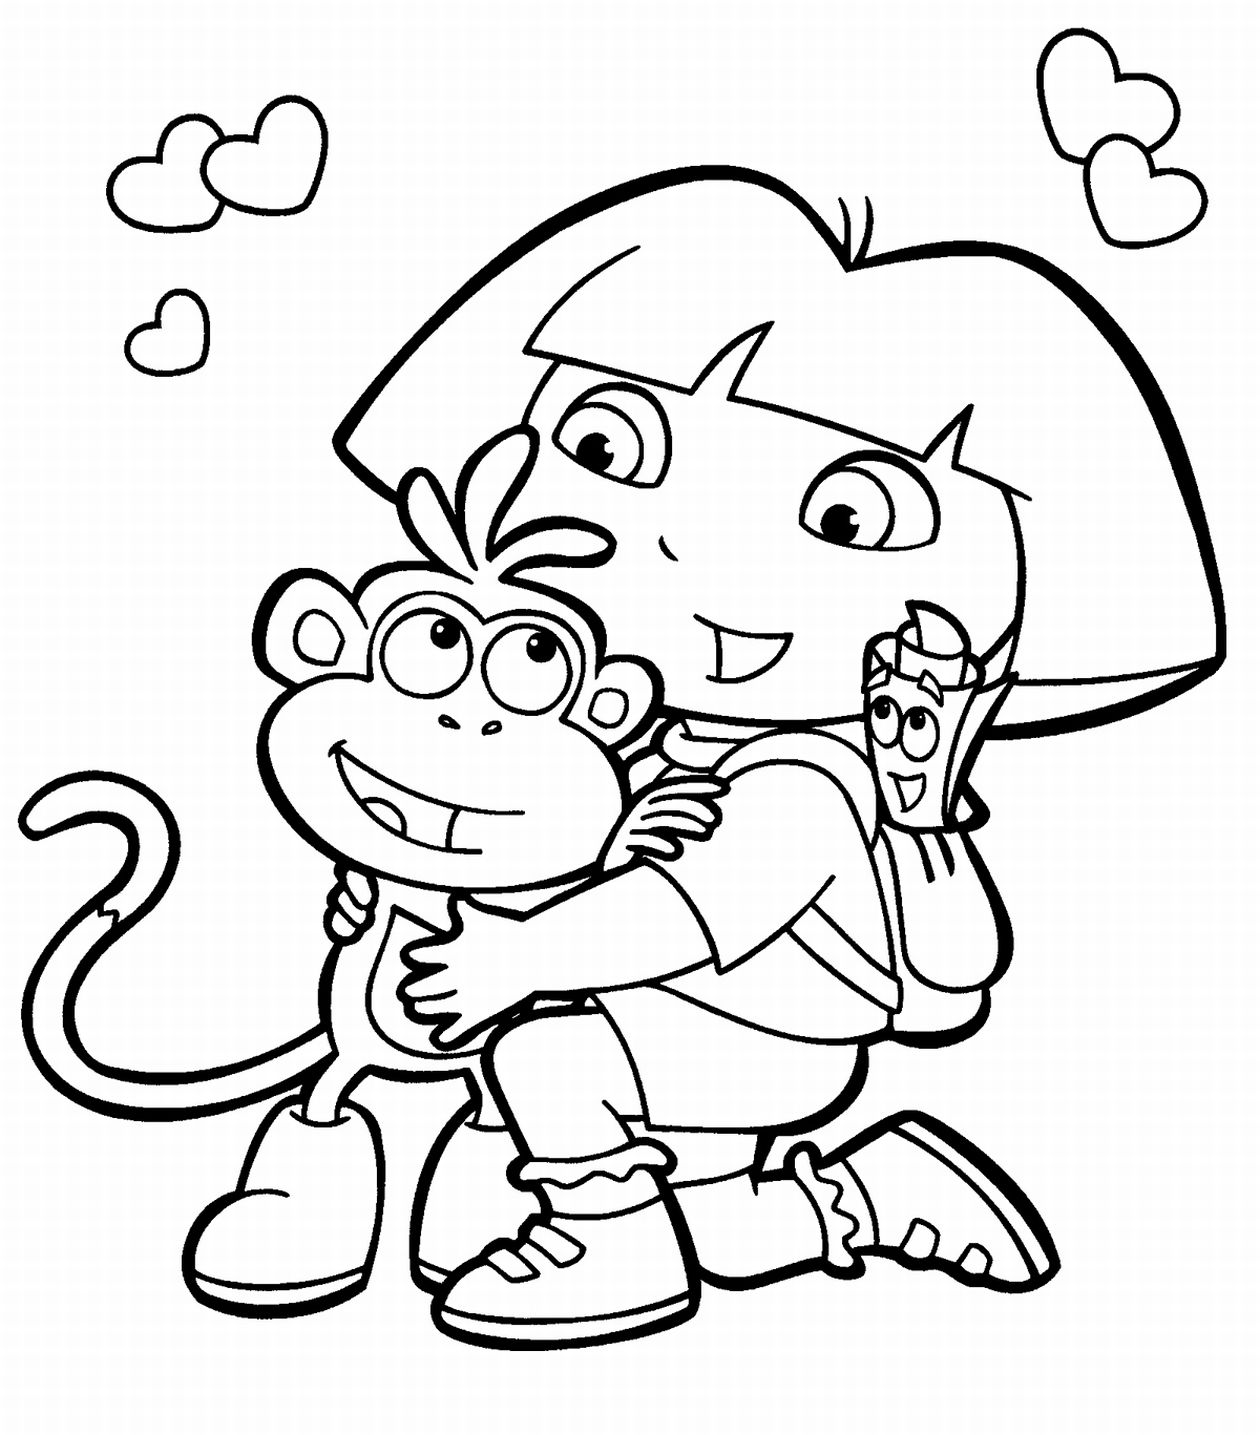 Coloring blog for kids january 2011 for Dora the explorer coloring page